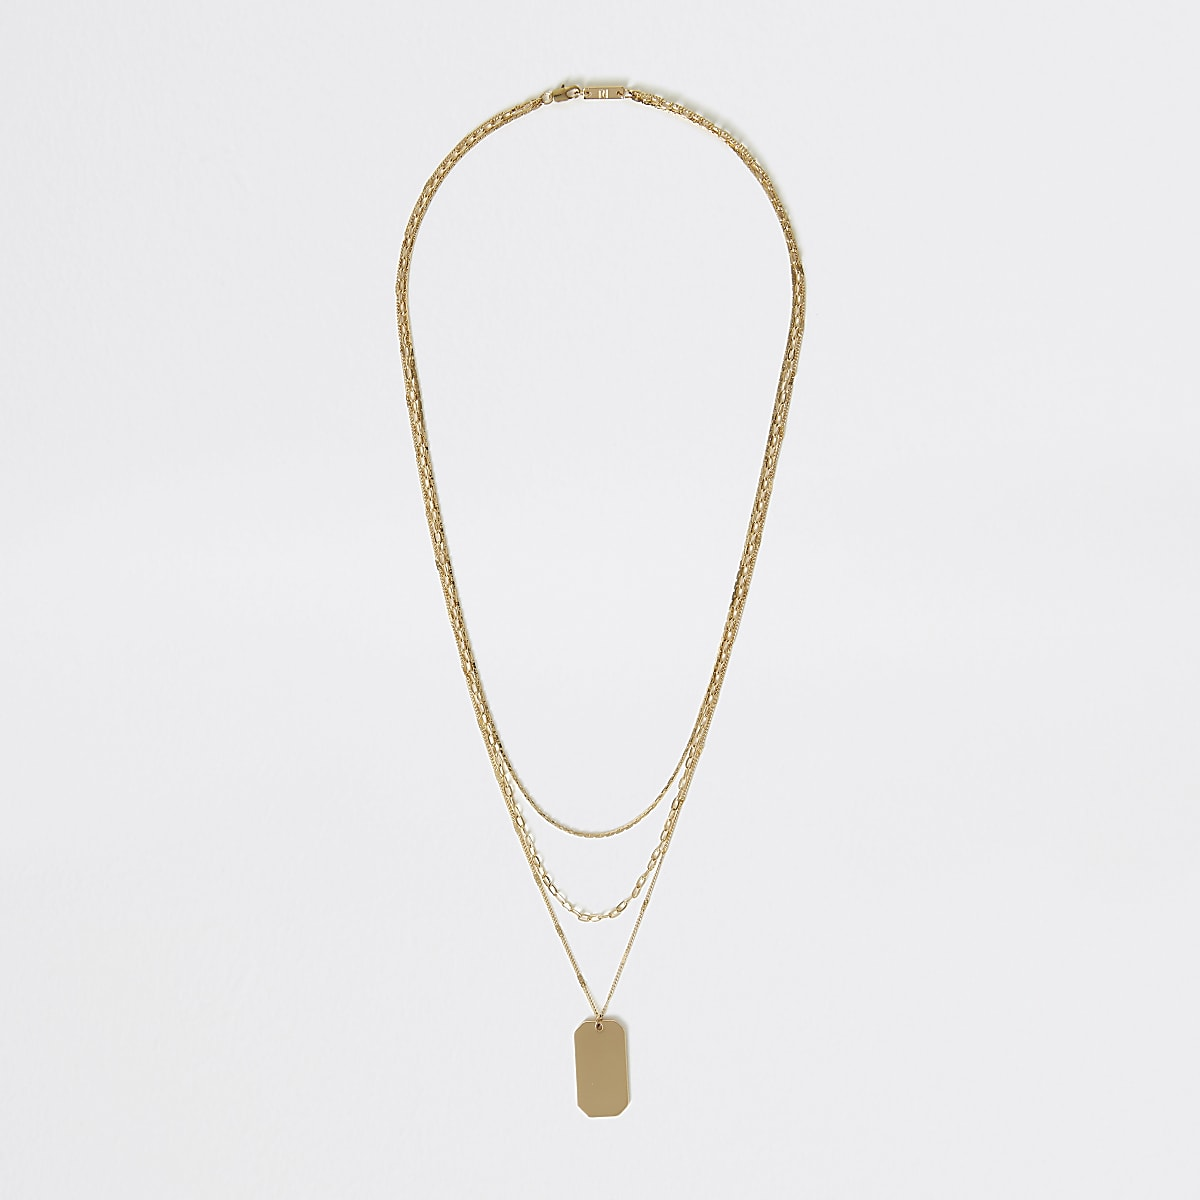 Gold colour dog tag chain layered necklace